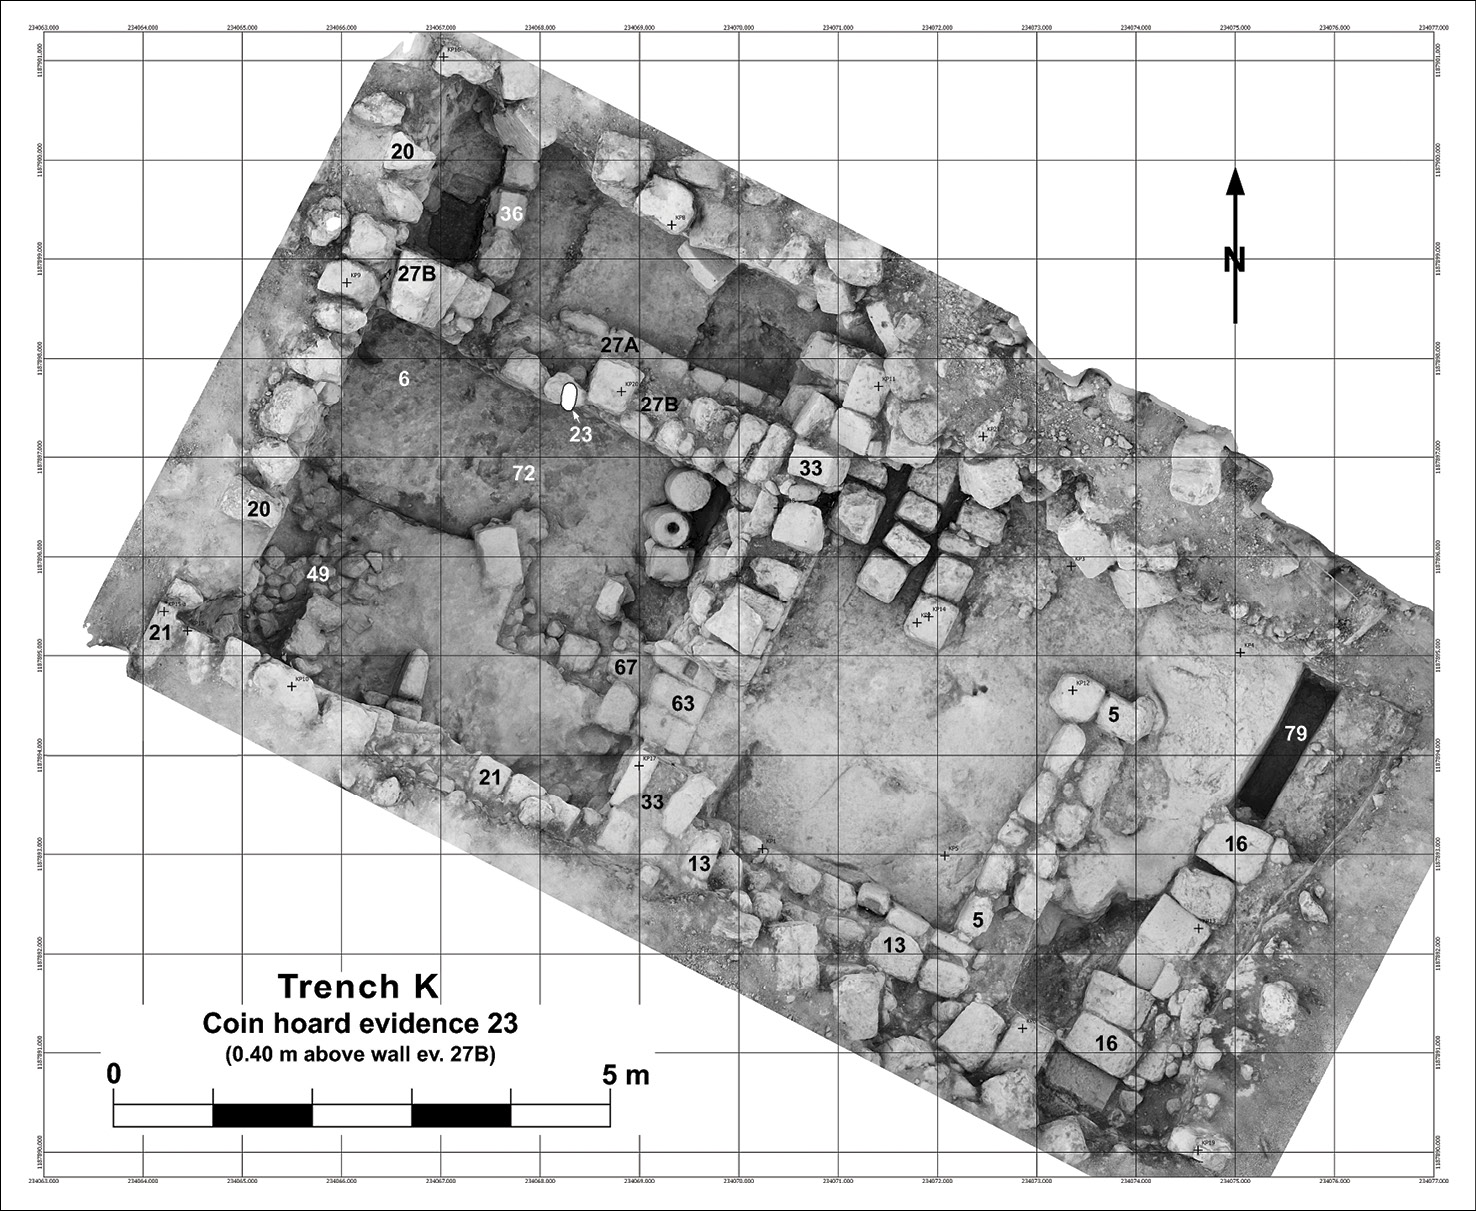 BELOW A photogram showing the excavated parts of the House of the Scroll (Trench K). The kitchen is the room in the SW corner. Marked in white (no. 23) is the place where a coin hoard was found.